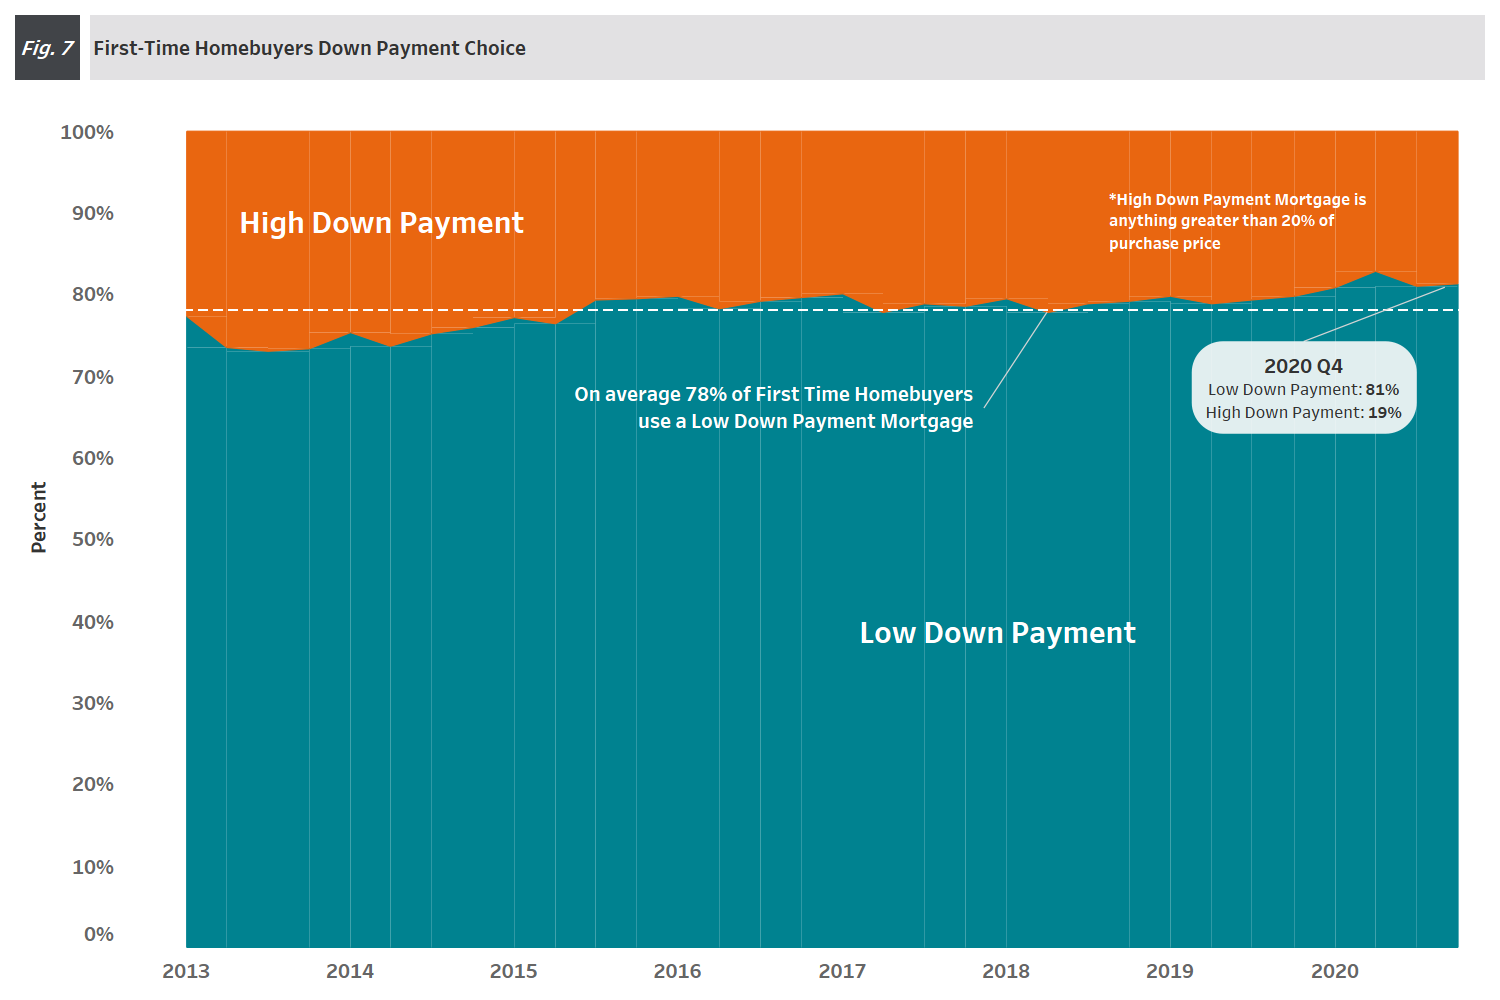 Chart: 4Q 2020 Figure 7 - First-Time Homebuyer Down Payment Choice